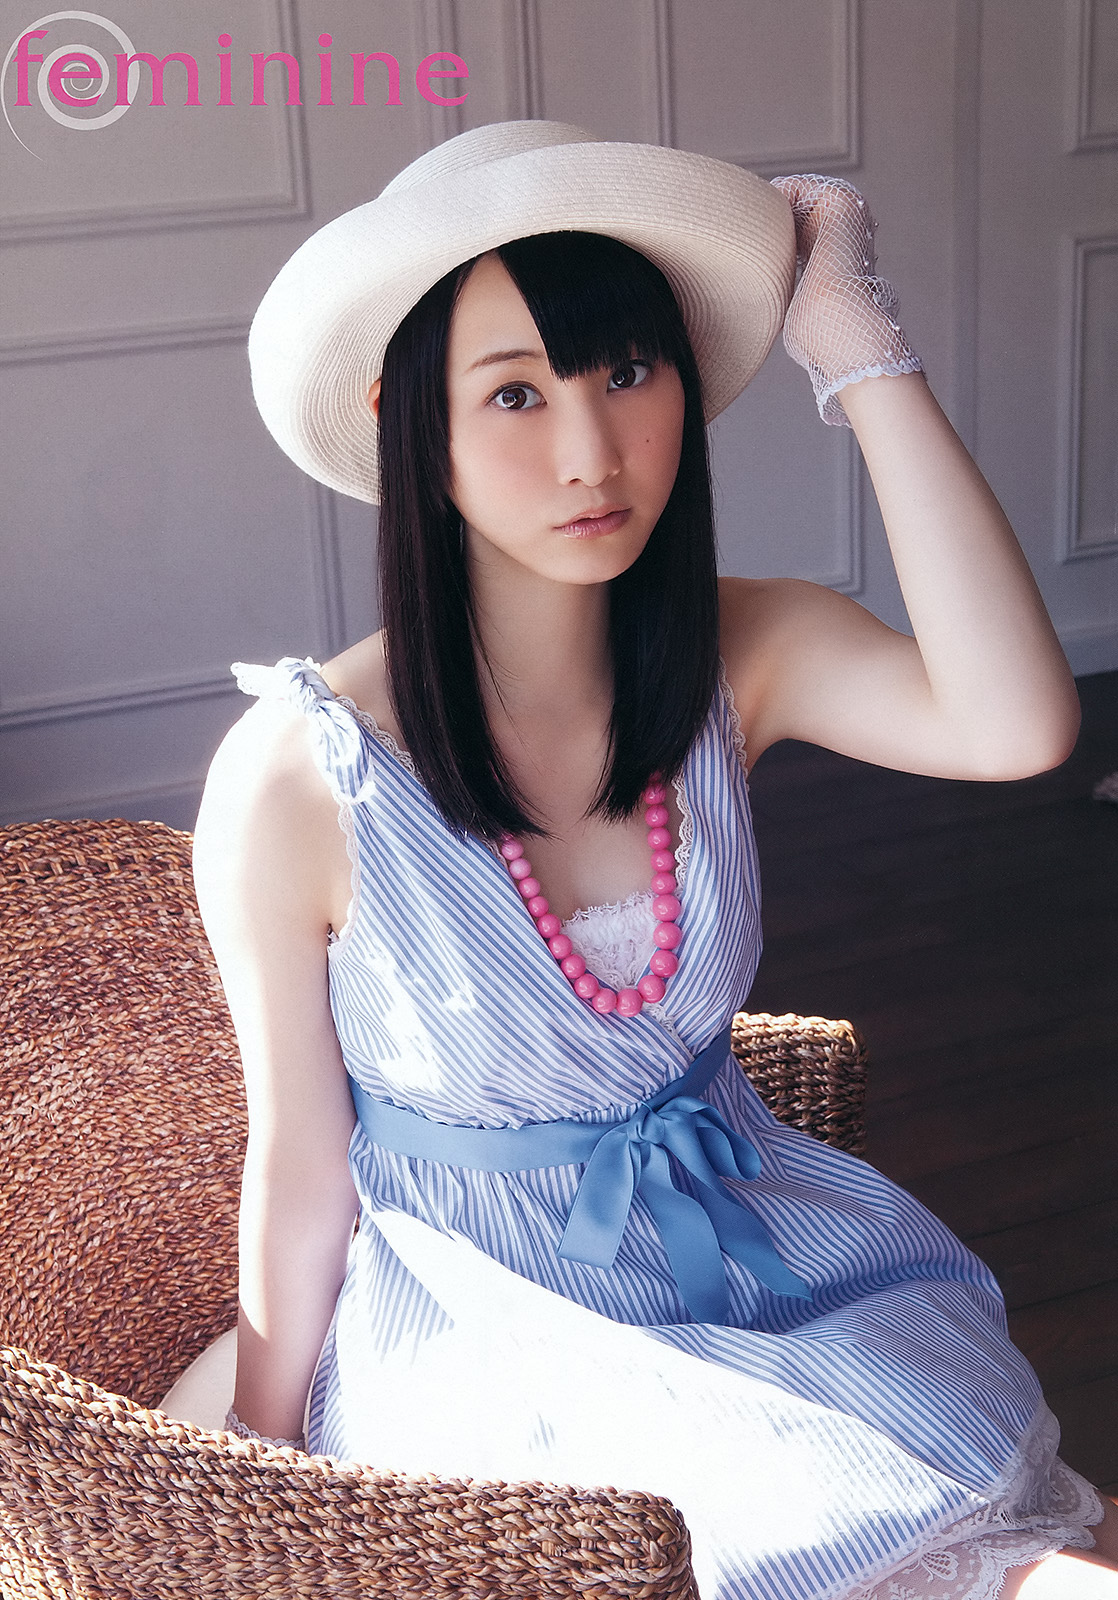 how tall is matsui rena